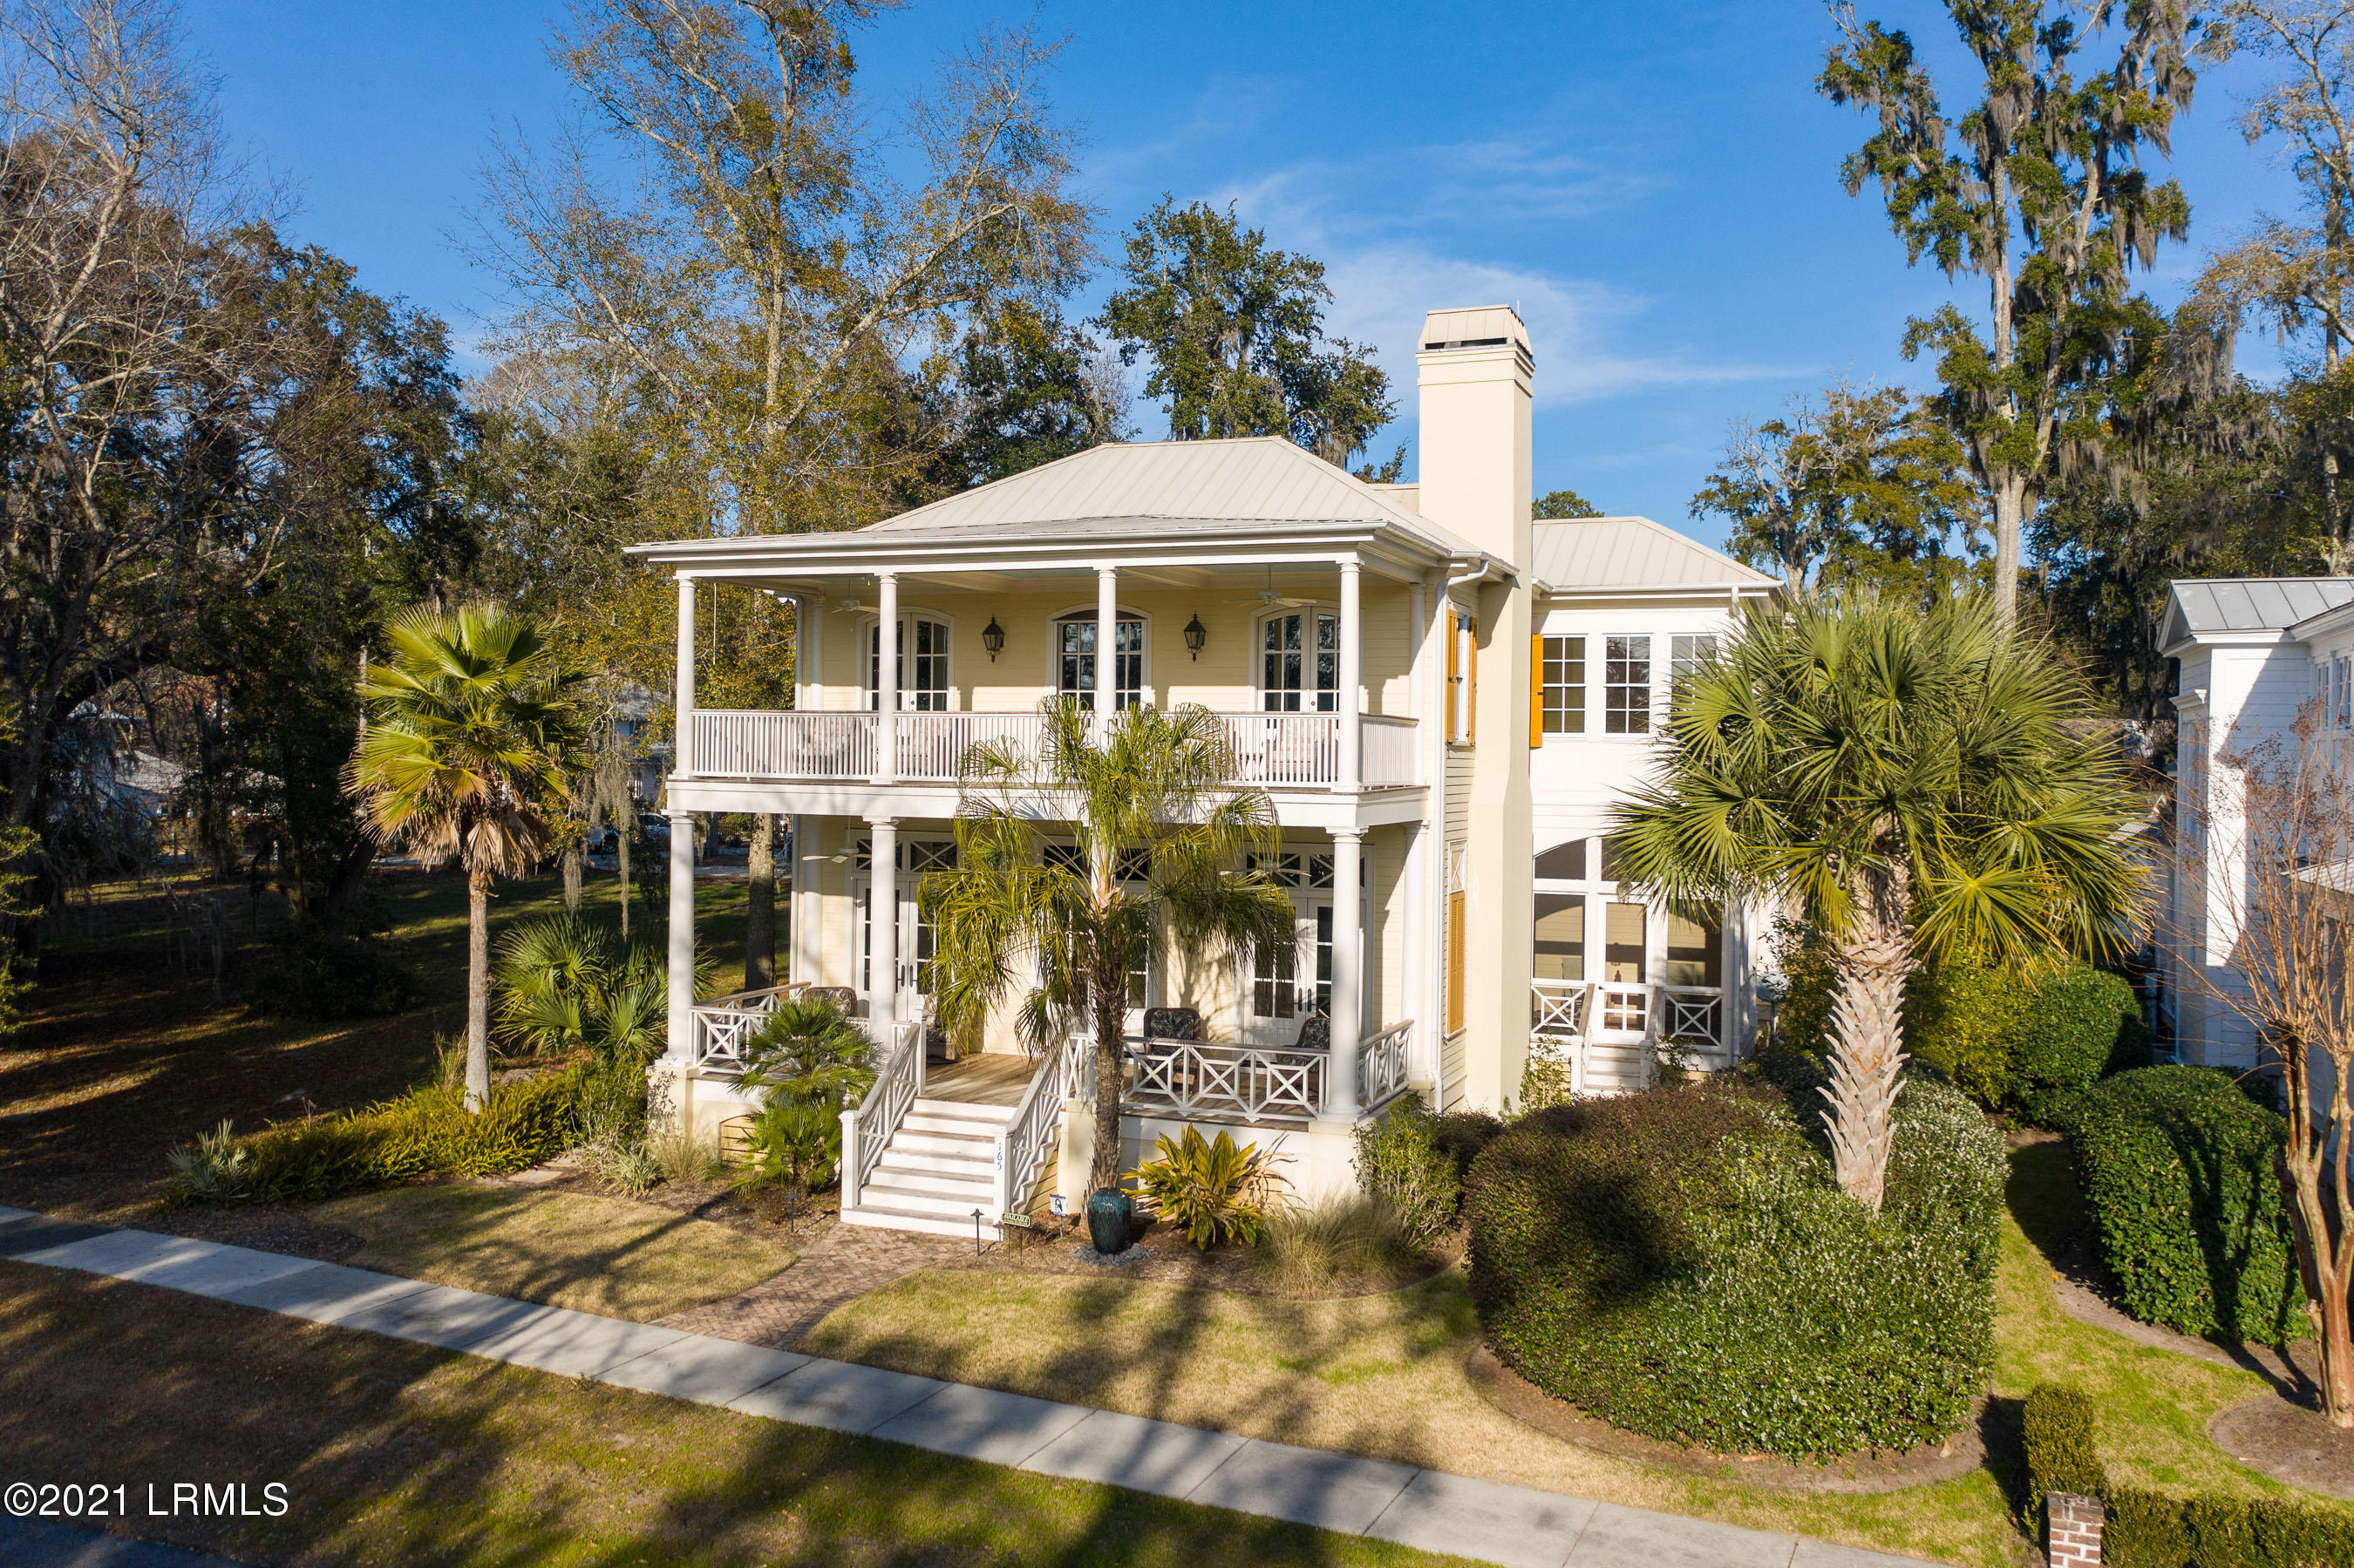 Photo of 165 South Park, Beaufort, SC 29906